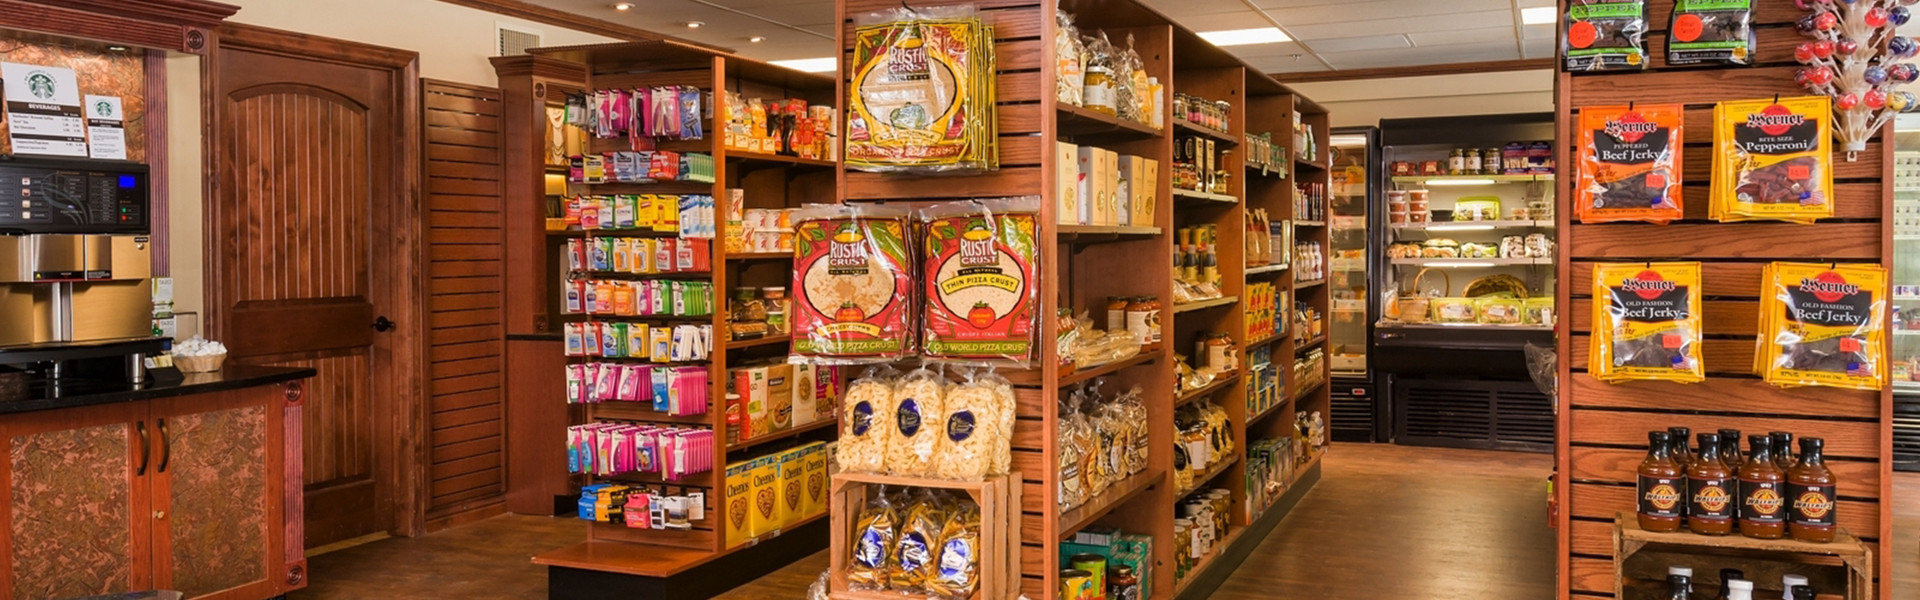 Marketplace at our Las Vegas Hotel and Casino | Well-Stocked Shelves at Marketplace